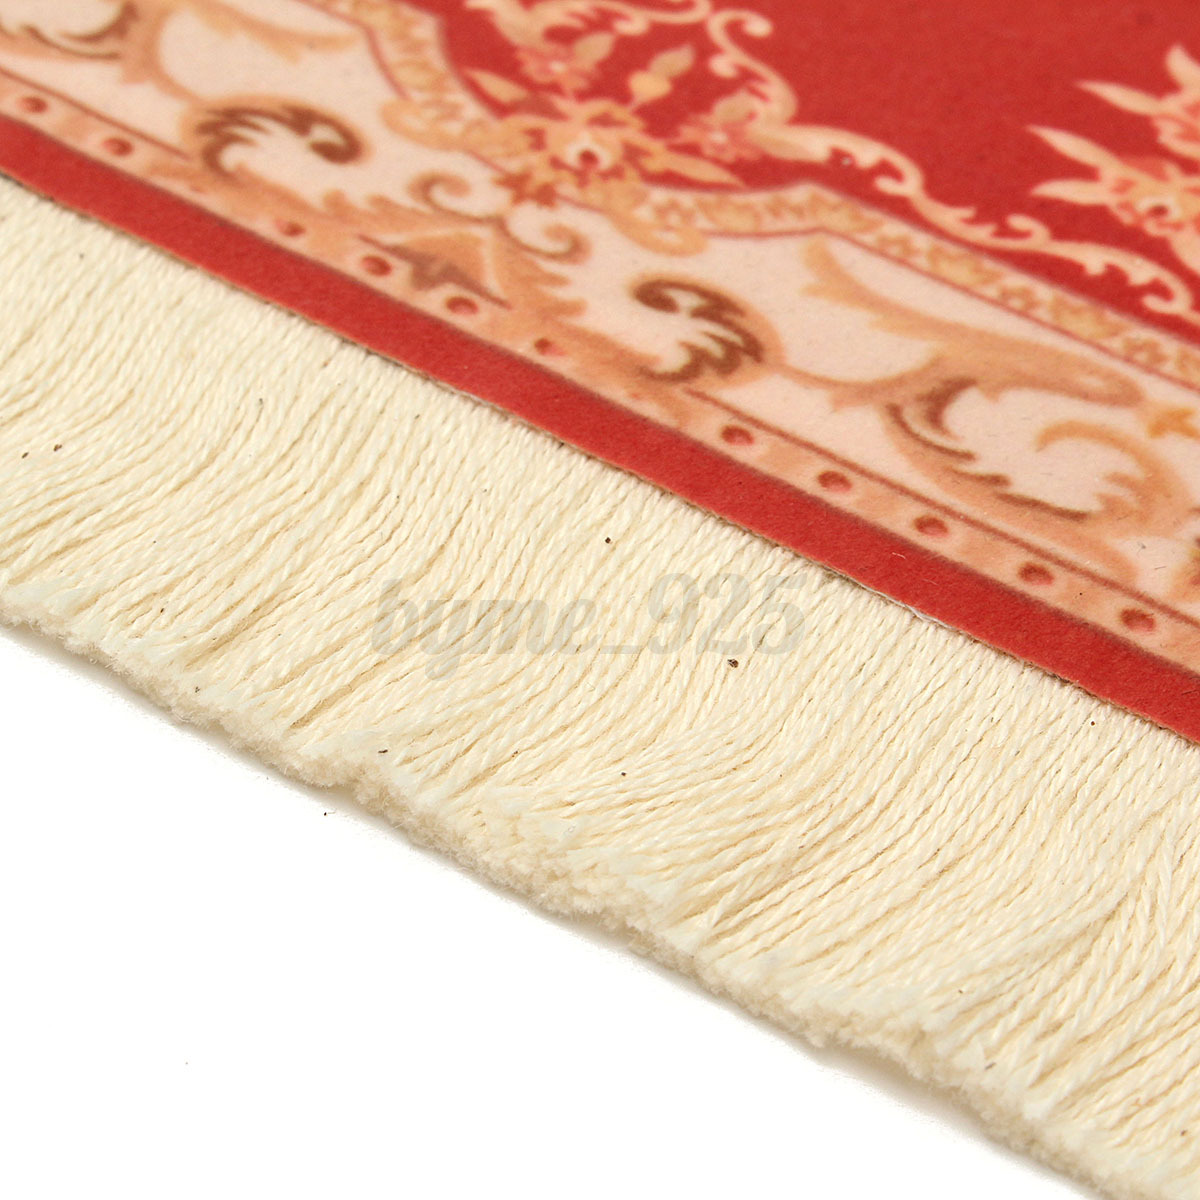 28x18cm Red Persian Style Mini Woven Rug Mouse Pad Carpet